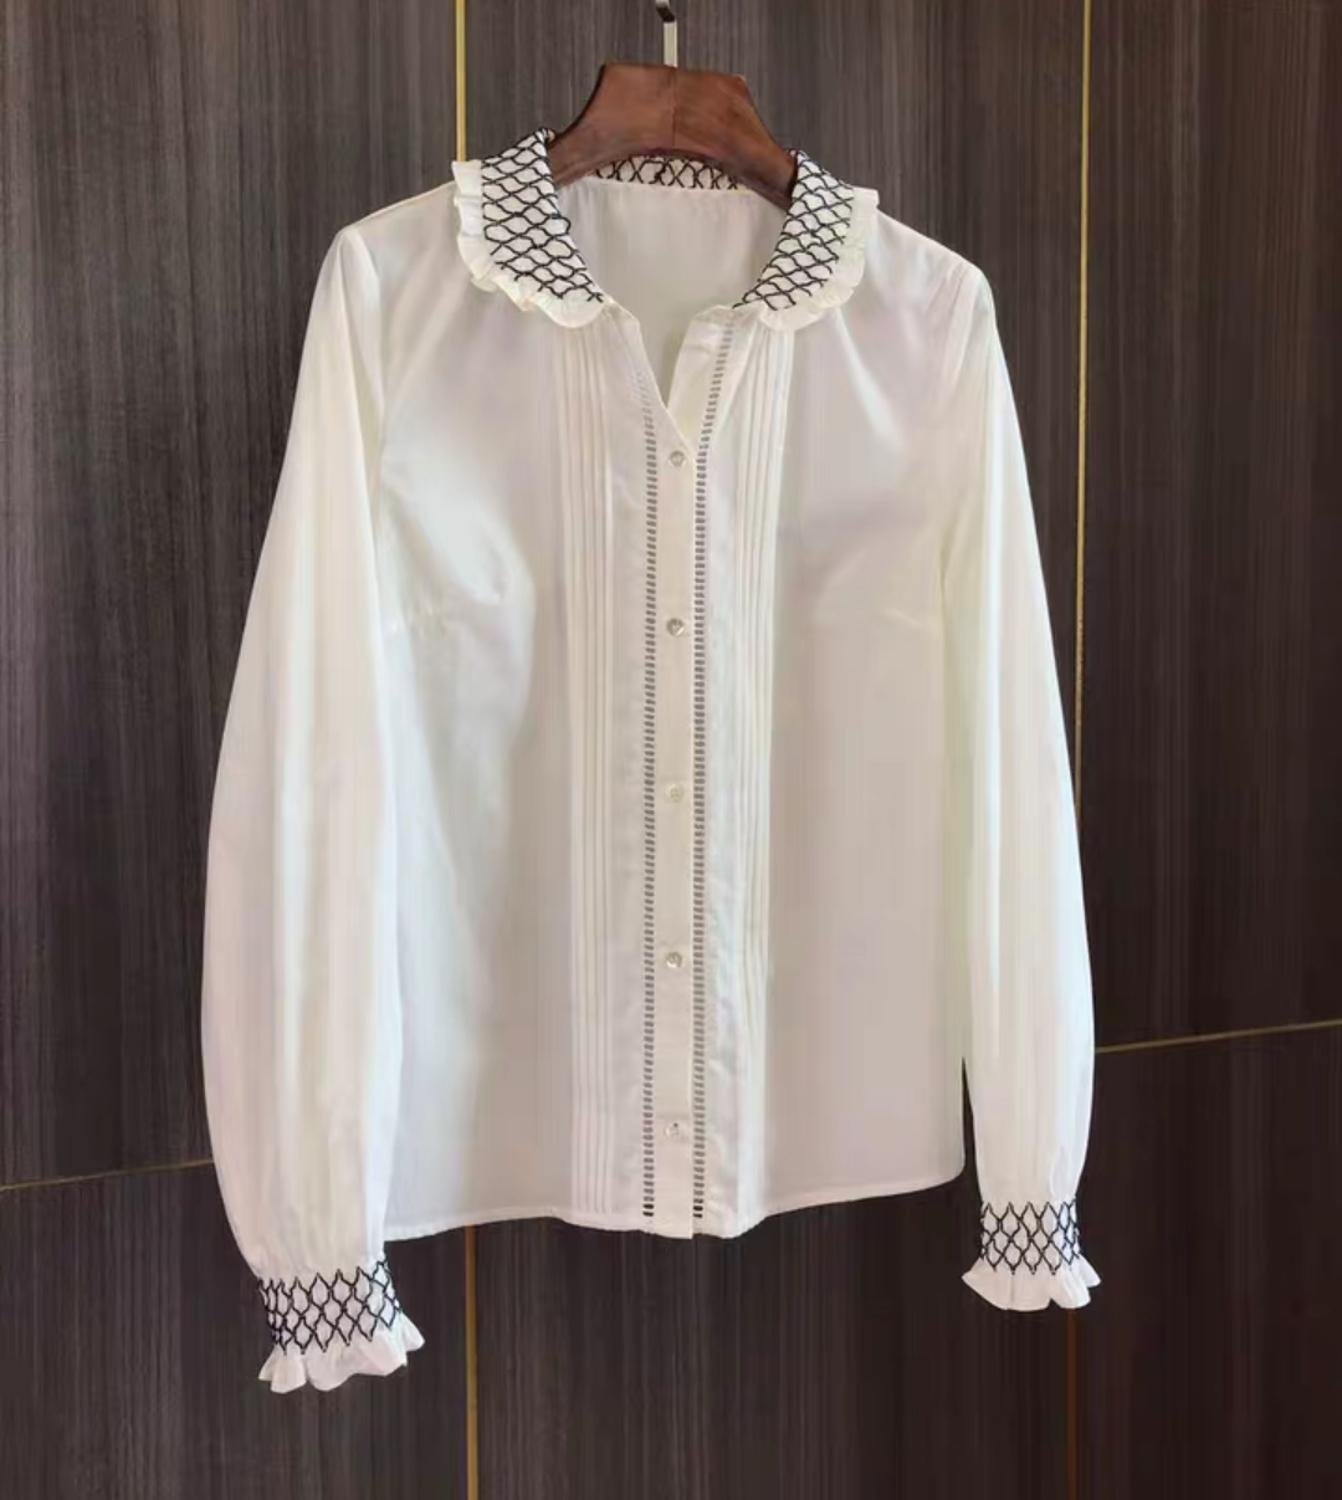 Black And White Contrast Grid Jacquard Women Shirt Long Sleeve Retro Lady Blouse